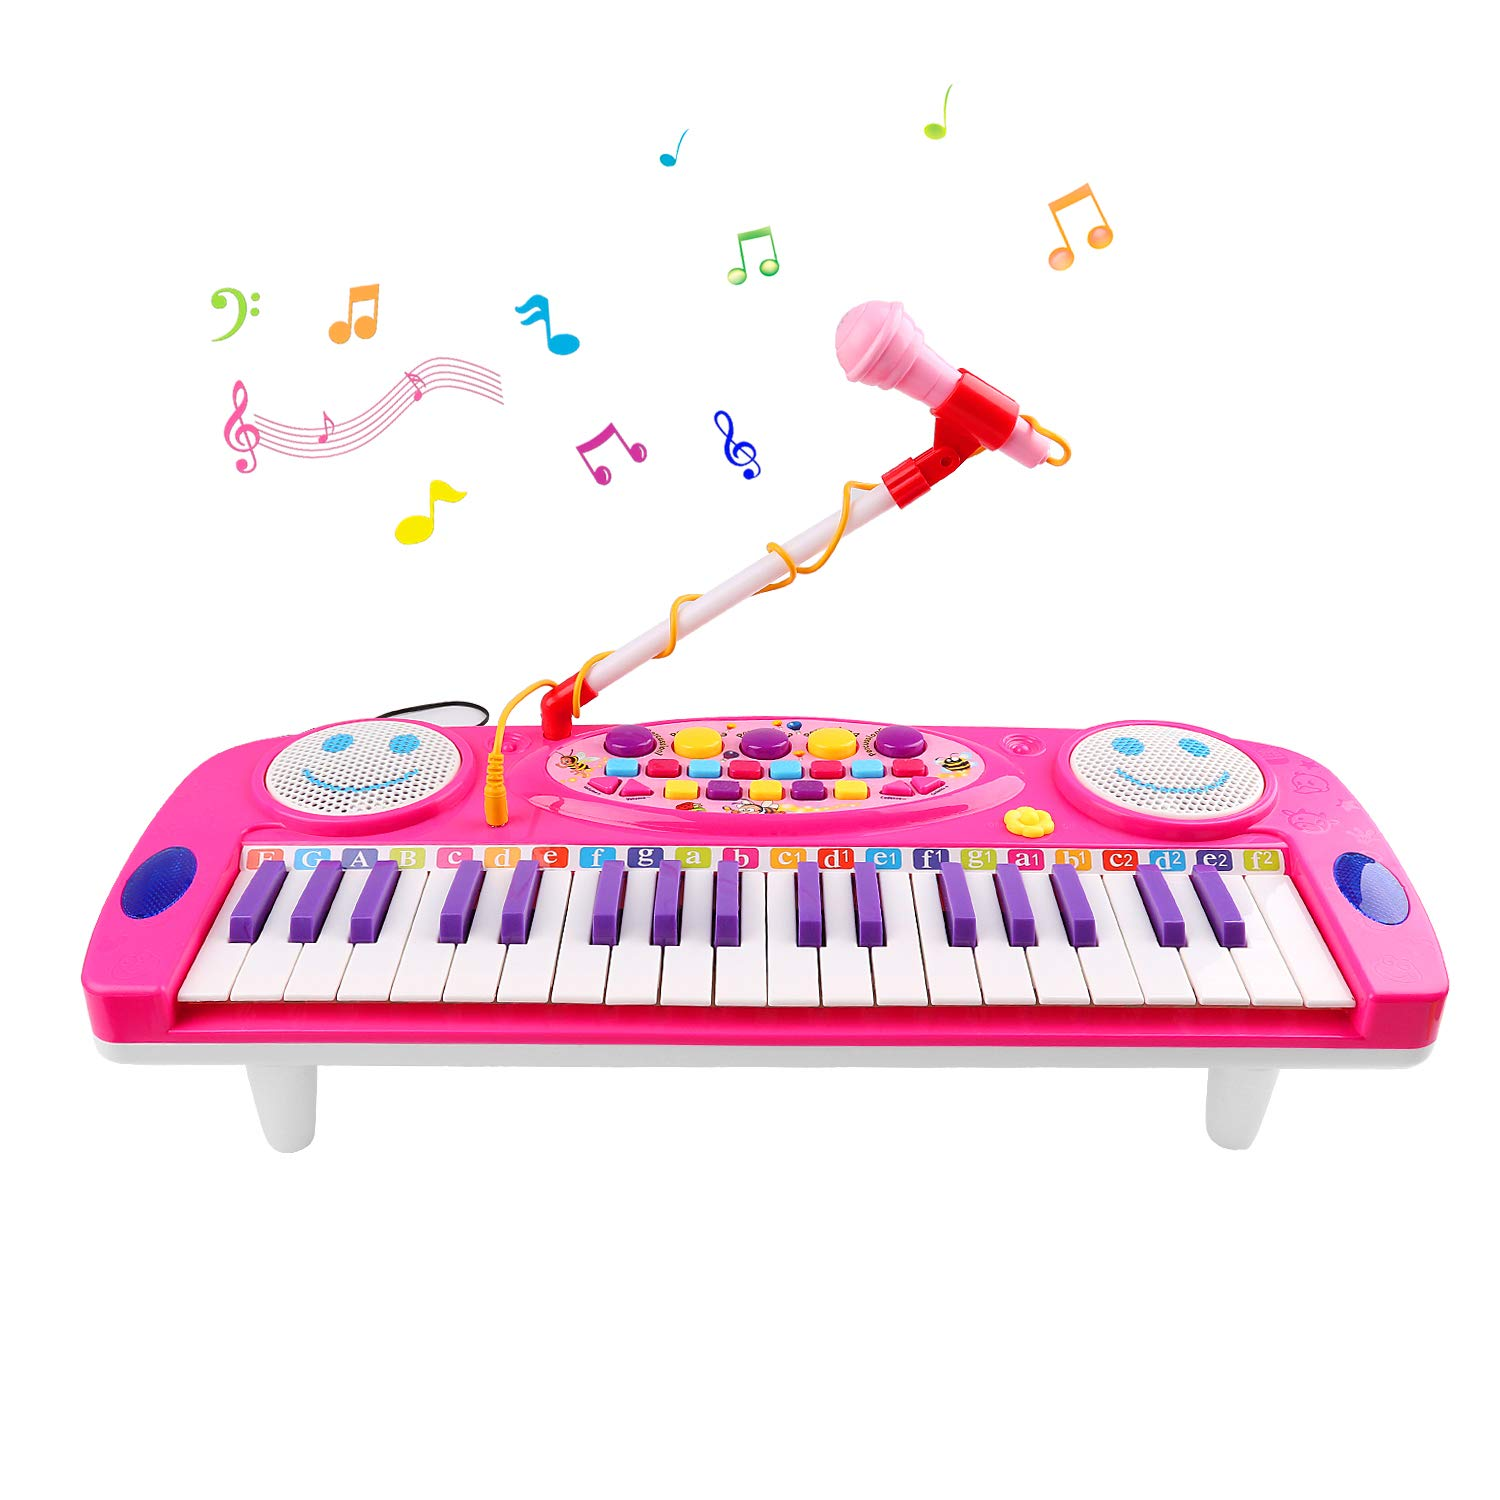 TWFRIC Piano for Kids, 37 Keys Digital Piano Music Keyboard with Microphone, Multi Portable Functional Electronic Musical Kid Piano Organ Instrument,Christmas Toys Best Gift for Boys&Girls(Pink)